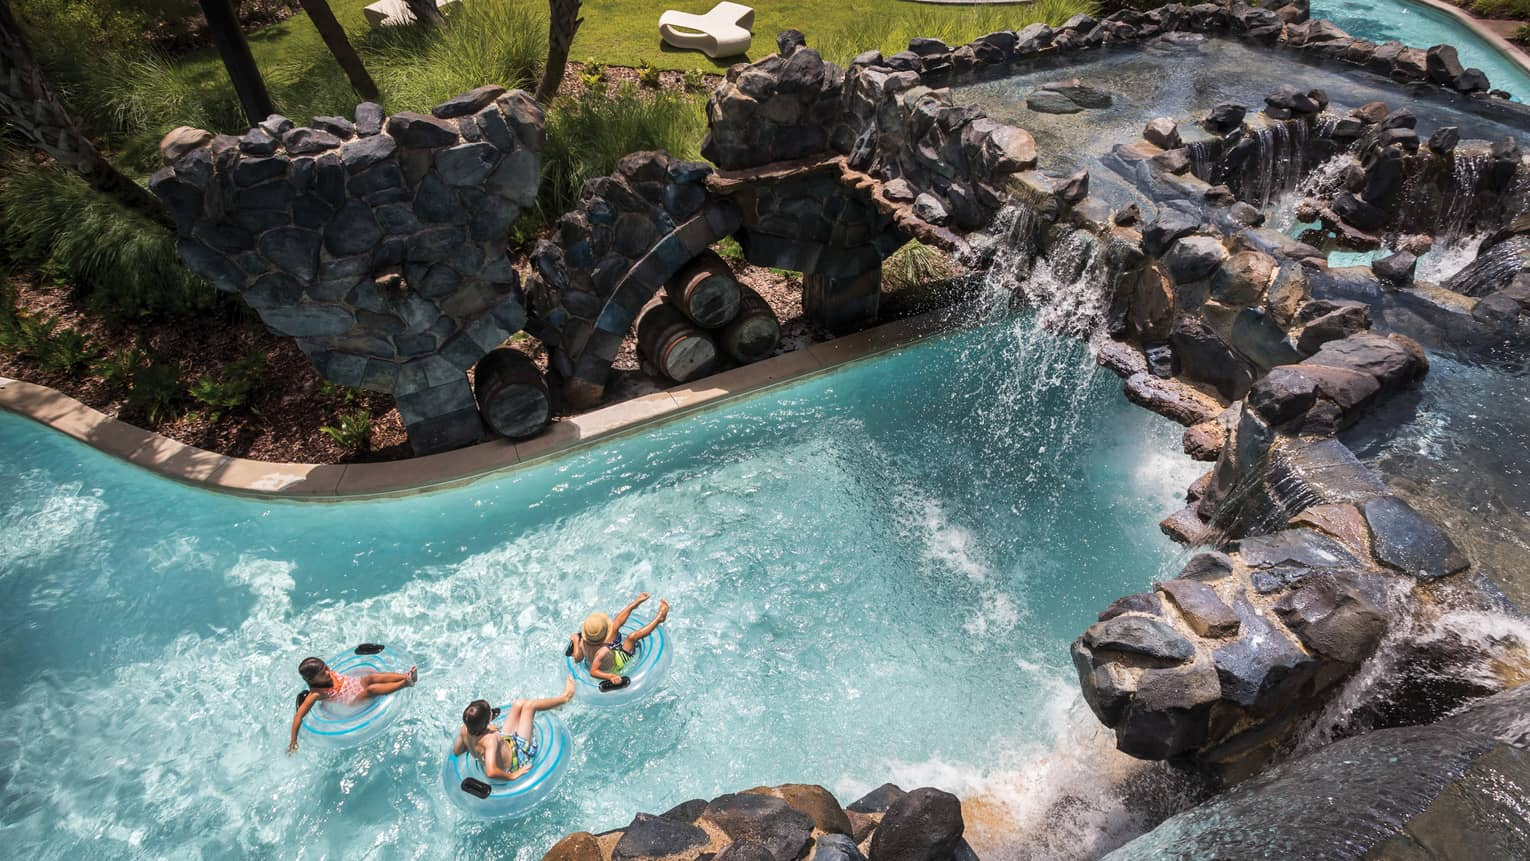 A bird's-eye view of three people floating in inner tubes down a rock-lined lazy river pool at four seasons resort orlando at Walt Disney World